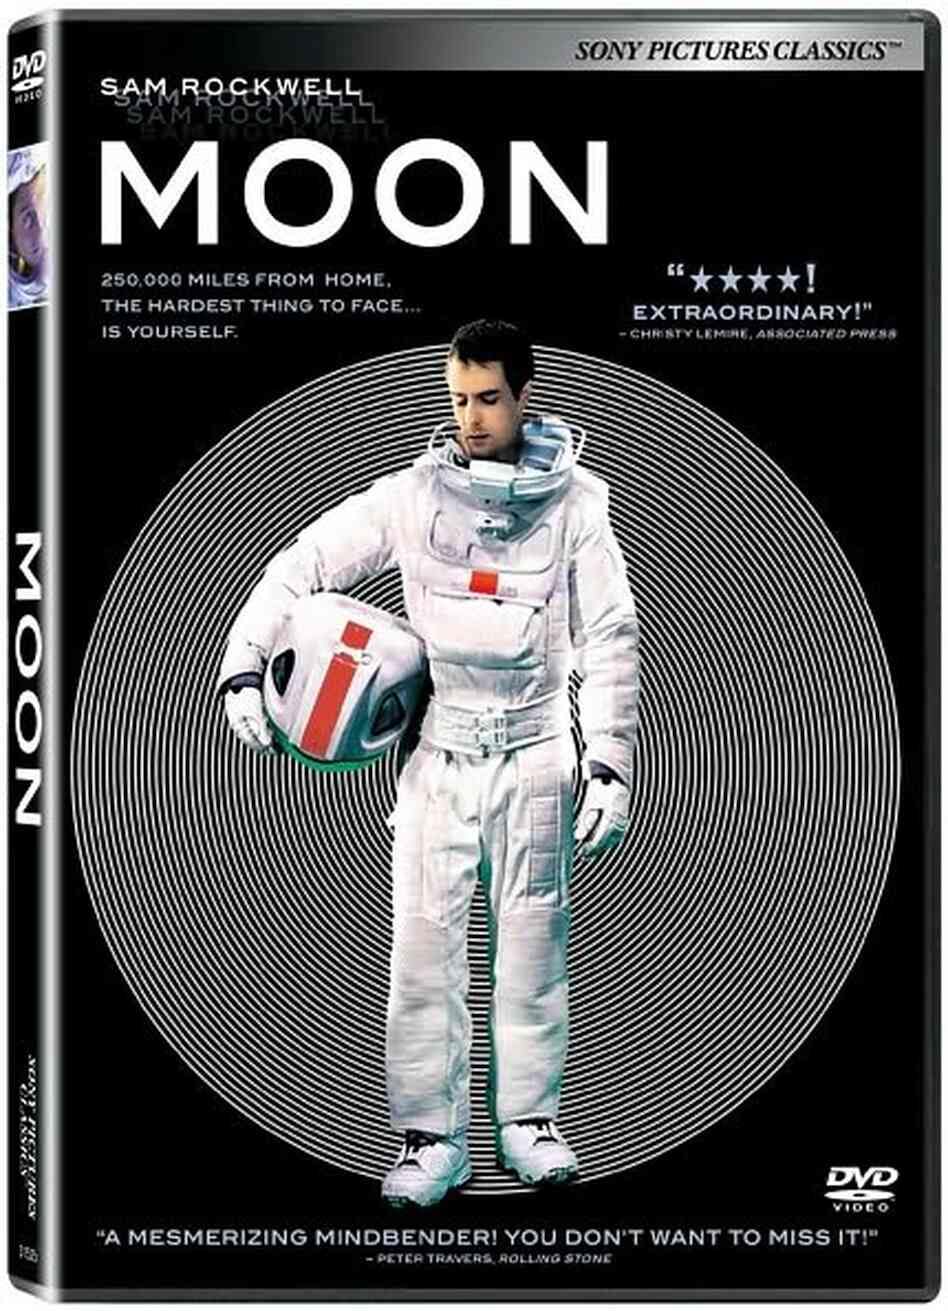 The DVD of Moon.